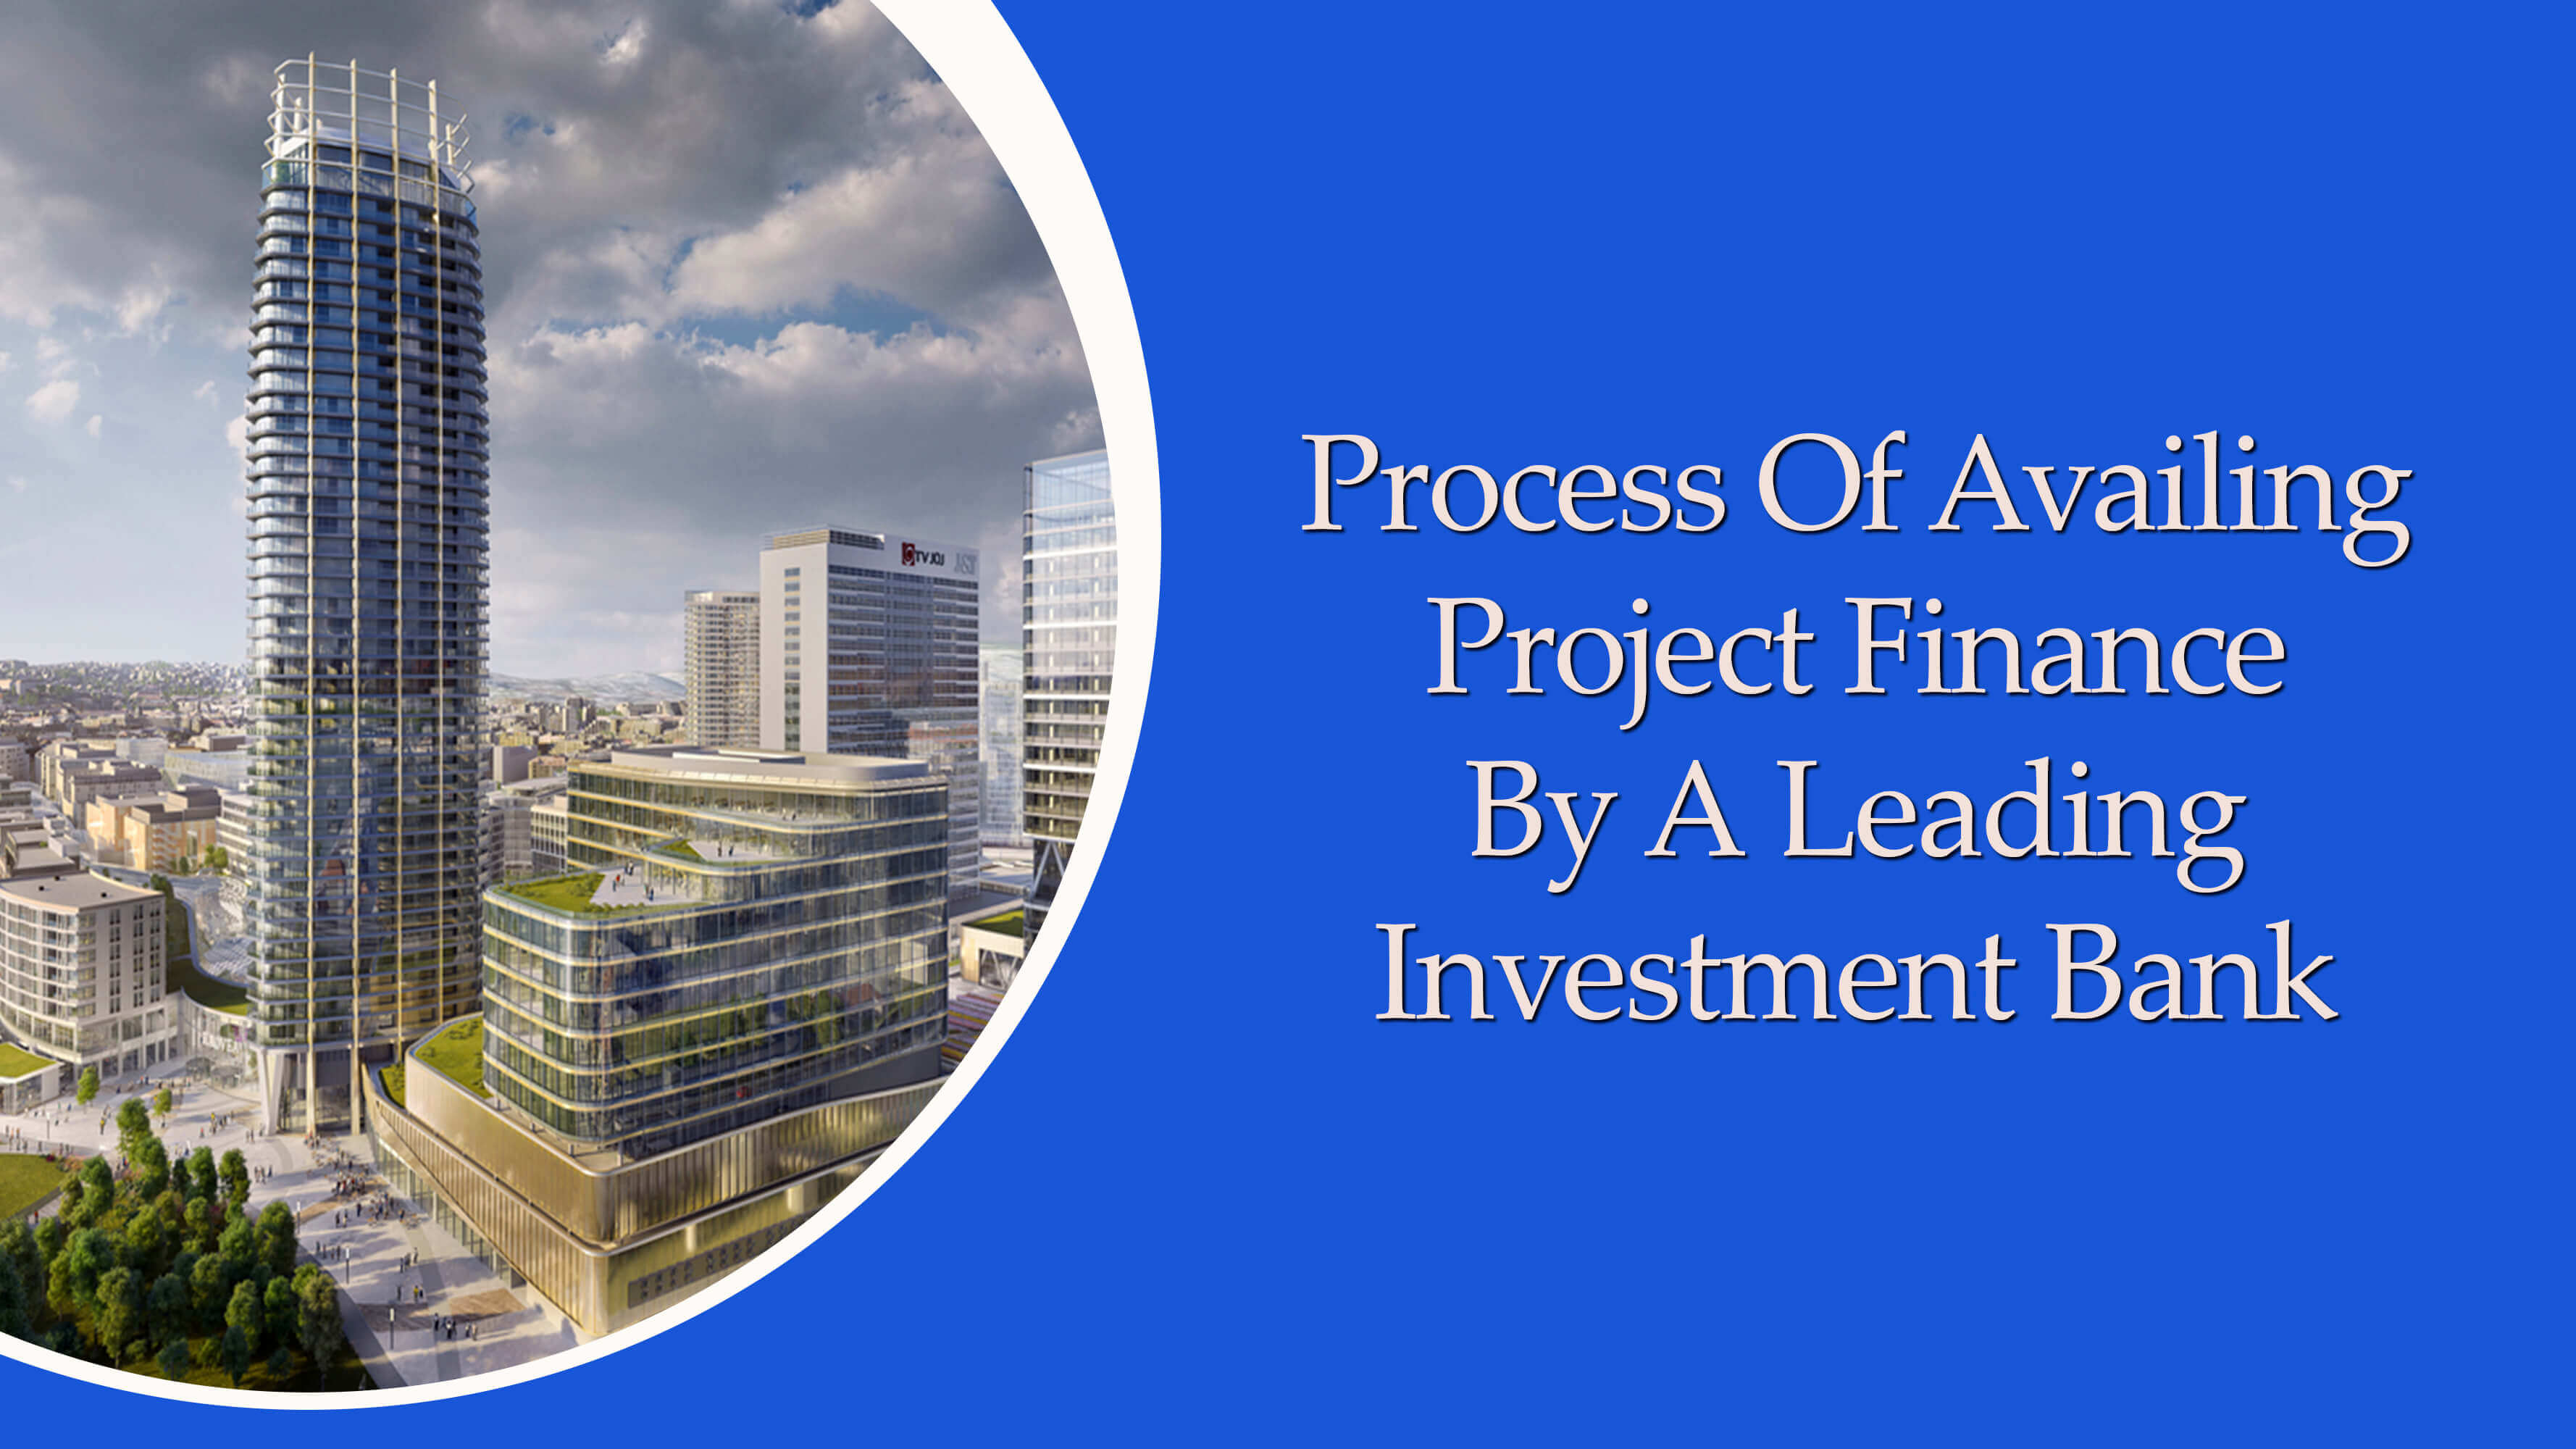 Resurgent India Project Finance Company- Offers the Best Funding Solutions